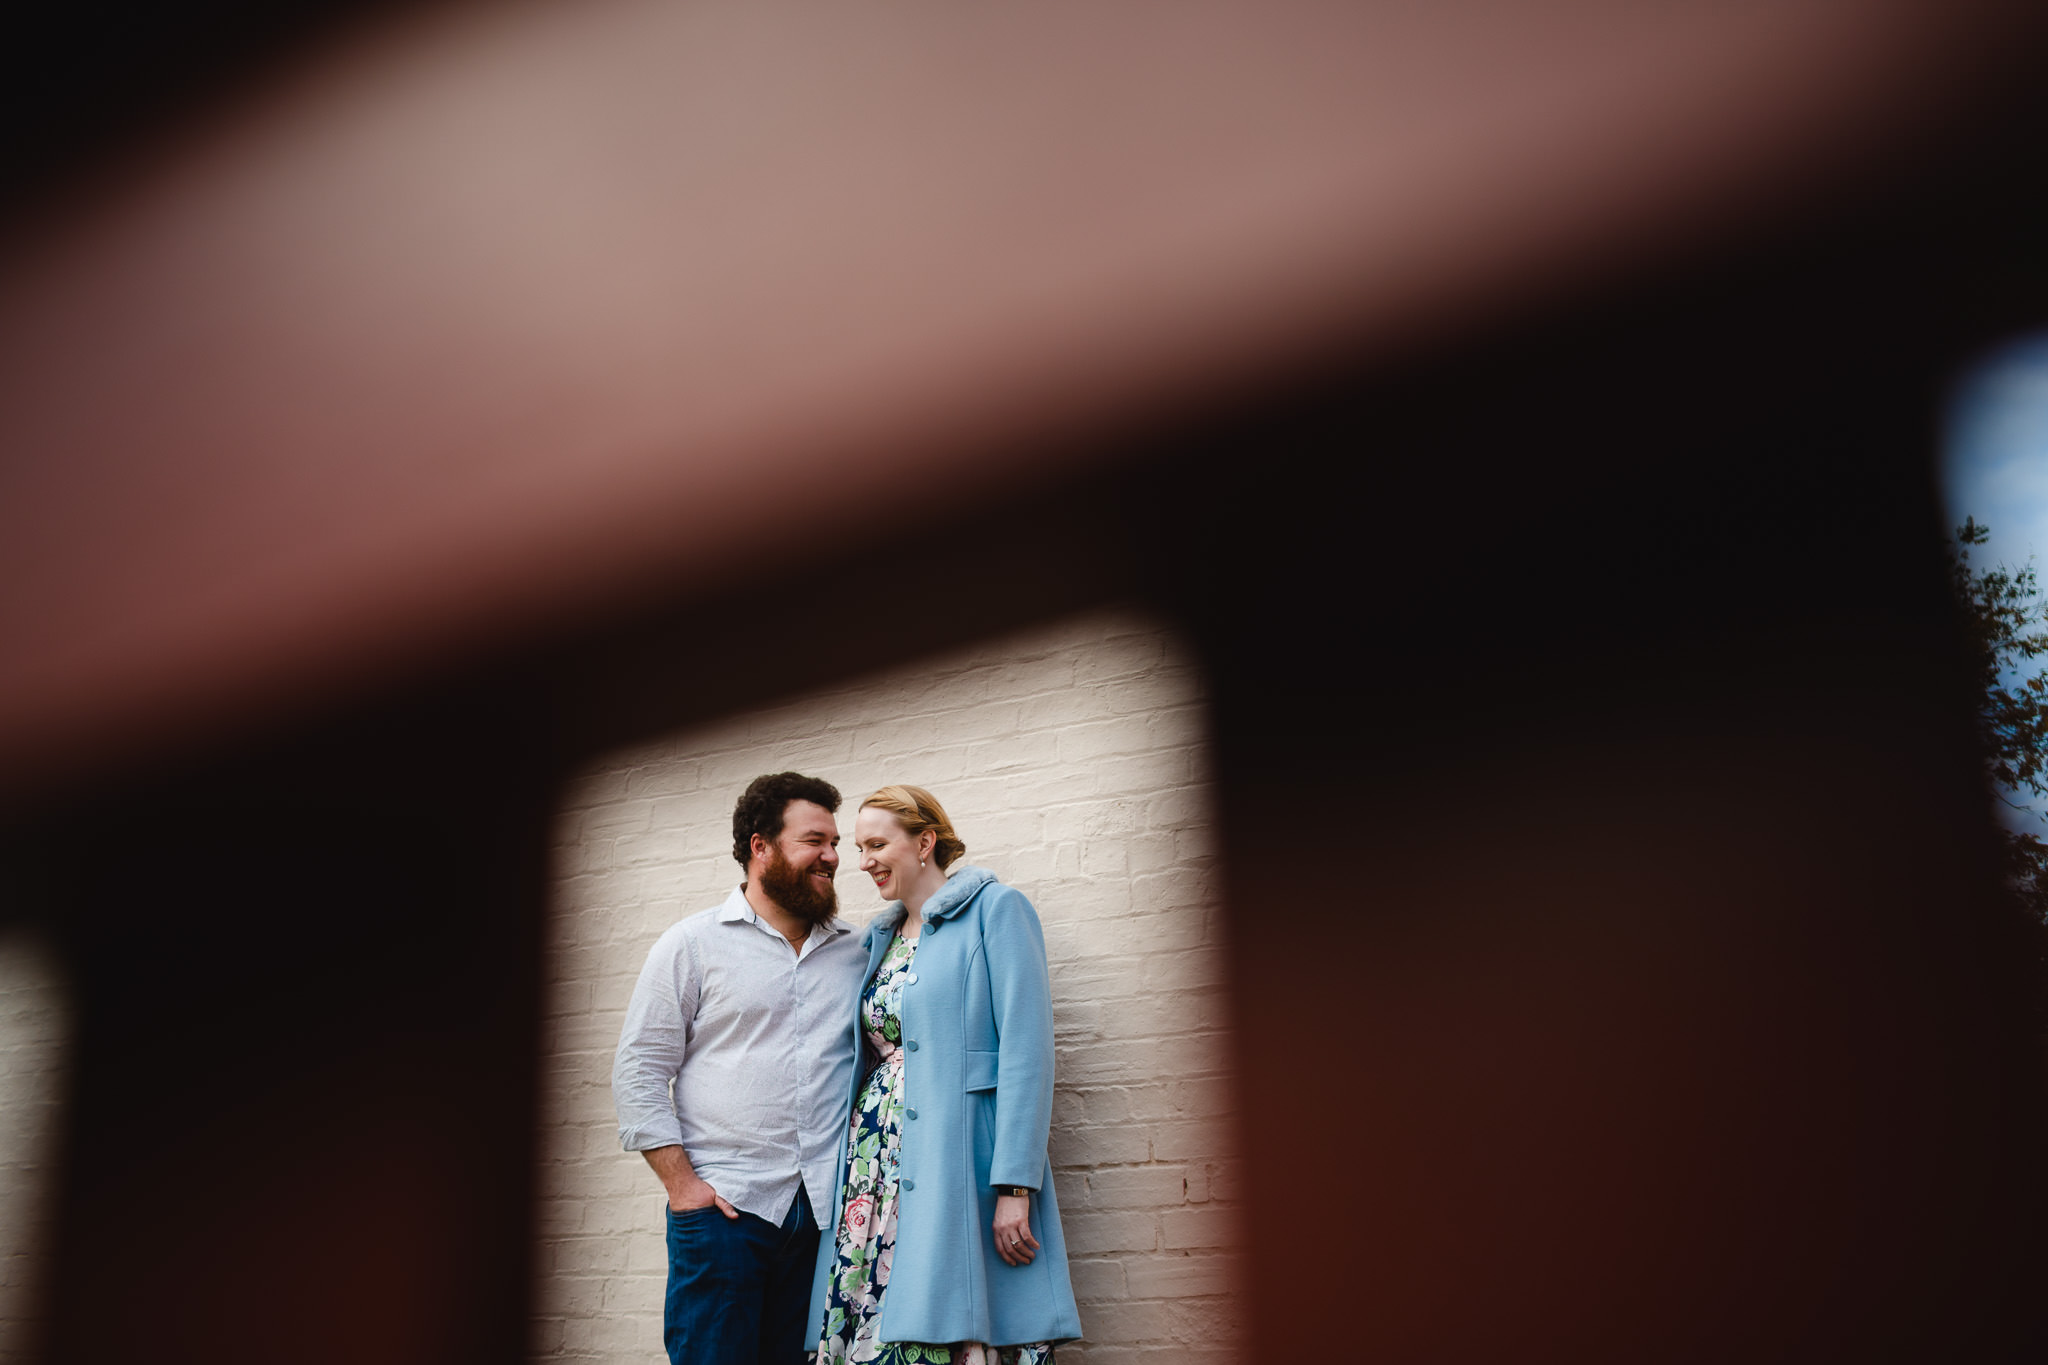 couple with vintage style with woman in blue coast and floral dress